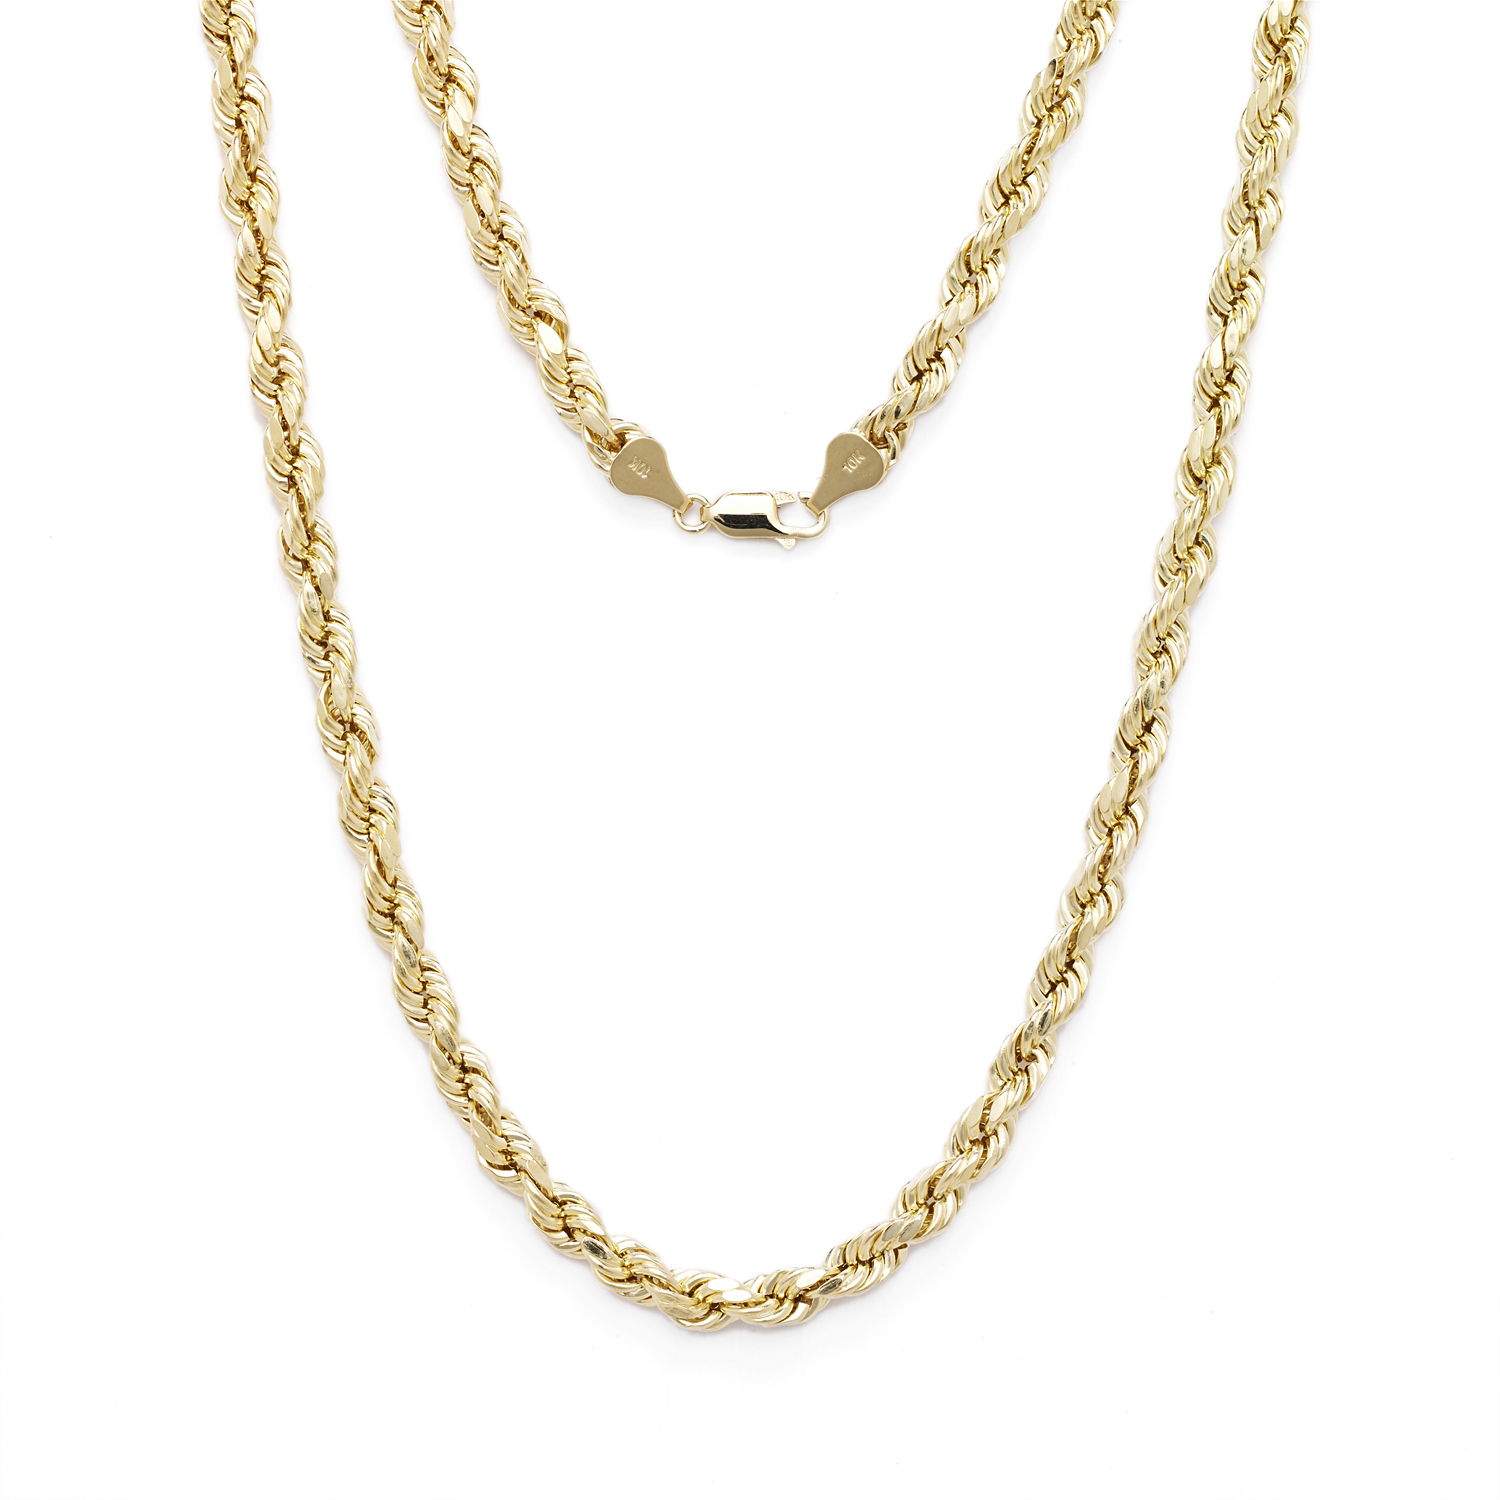 10k Yellow Gold Diamond Cut Hollow Rope Chain Necklace with Lobster Claw Clasp for Men and Women, 3mm by Glad Gold